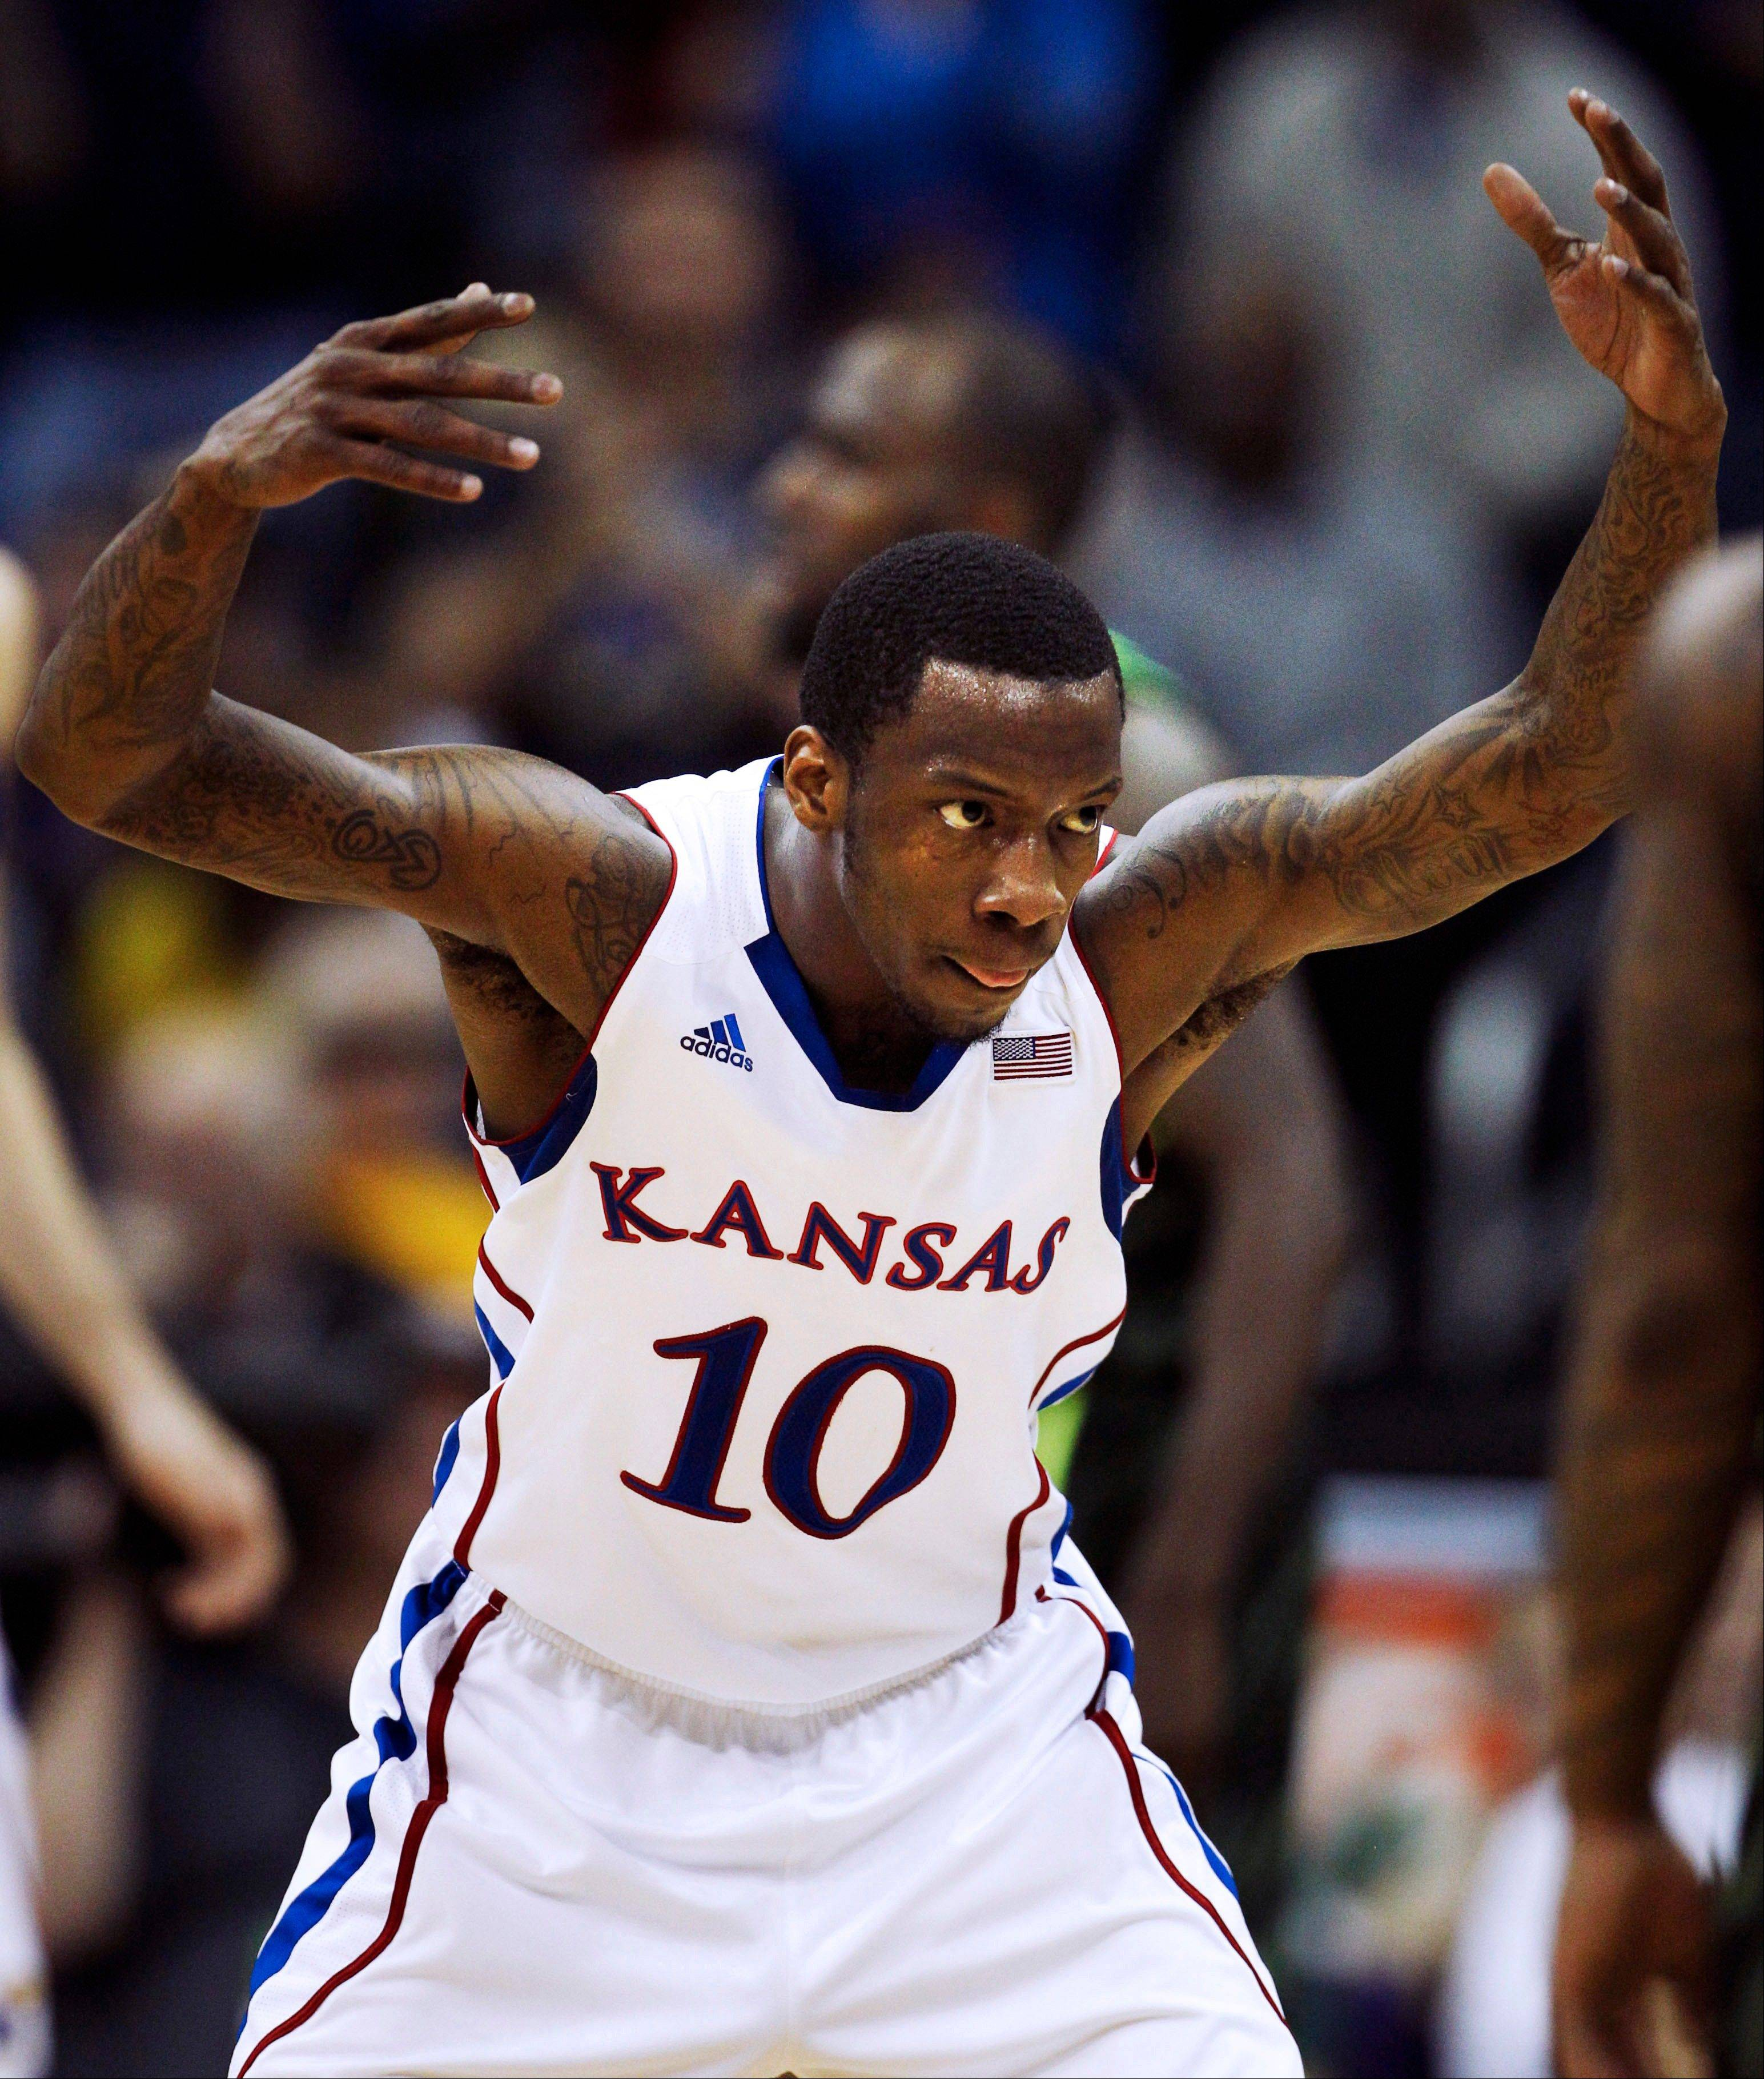 Kansas guard Tyshawn Taylor (10) signals to the crowd during the second half of an NCAA college basketball game against Baylor in the Big 12 Conference tournament Friday, March 9, 2012, in Kansas City, Mo. Taylor scored 20 points in the game.